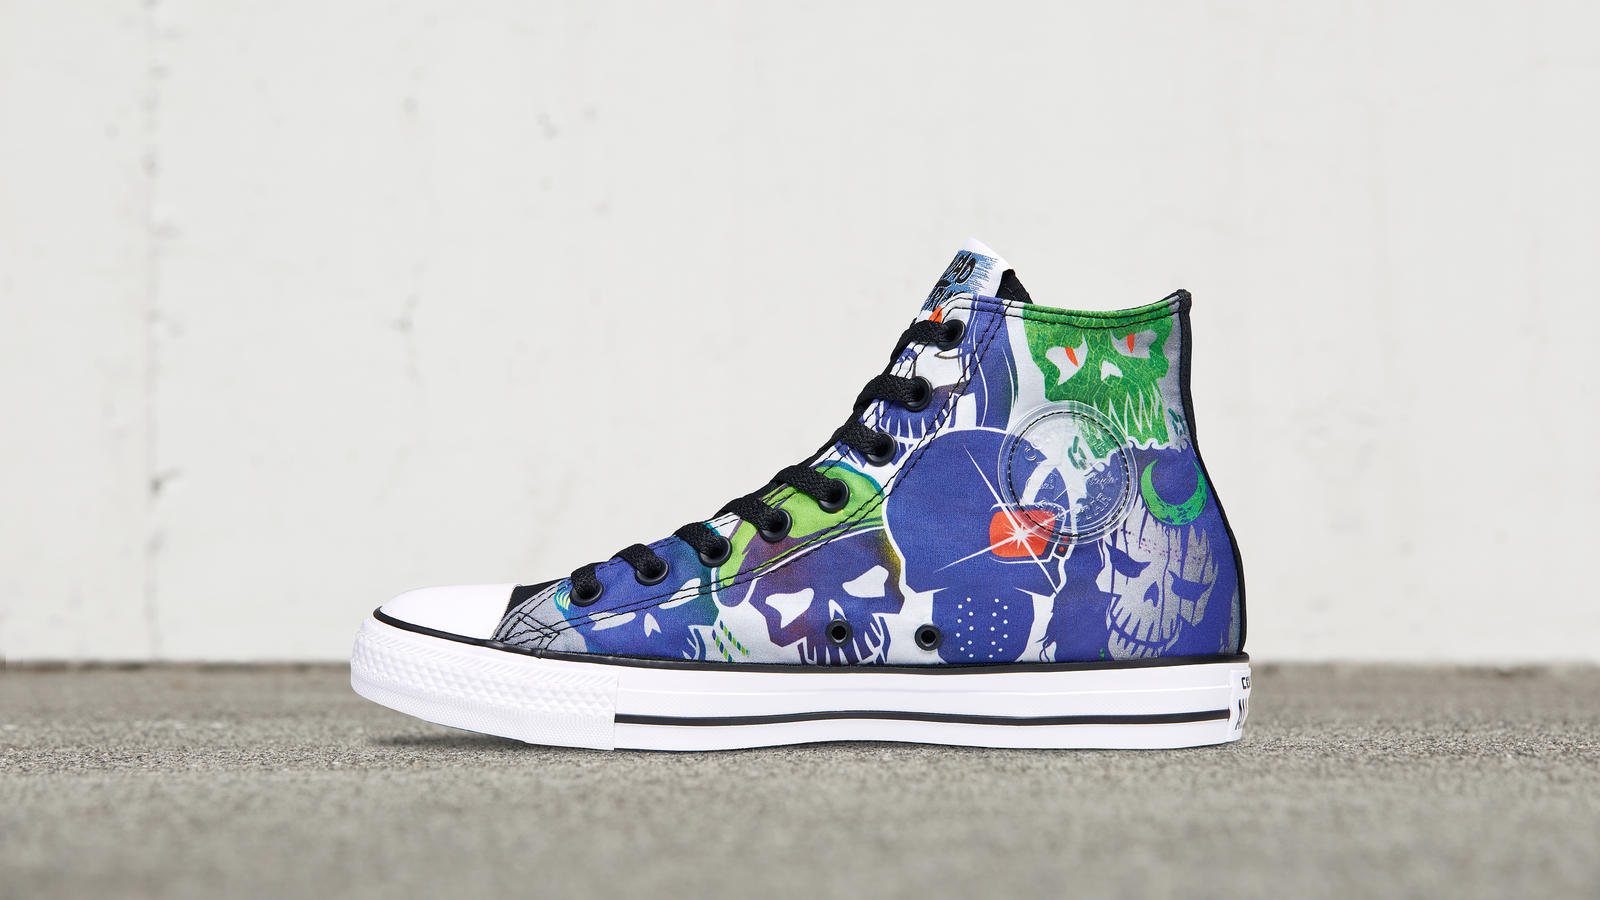 CONVERSE CHUCK TAYLOR ALL STAR DC COMICS HIGH TOP